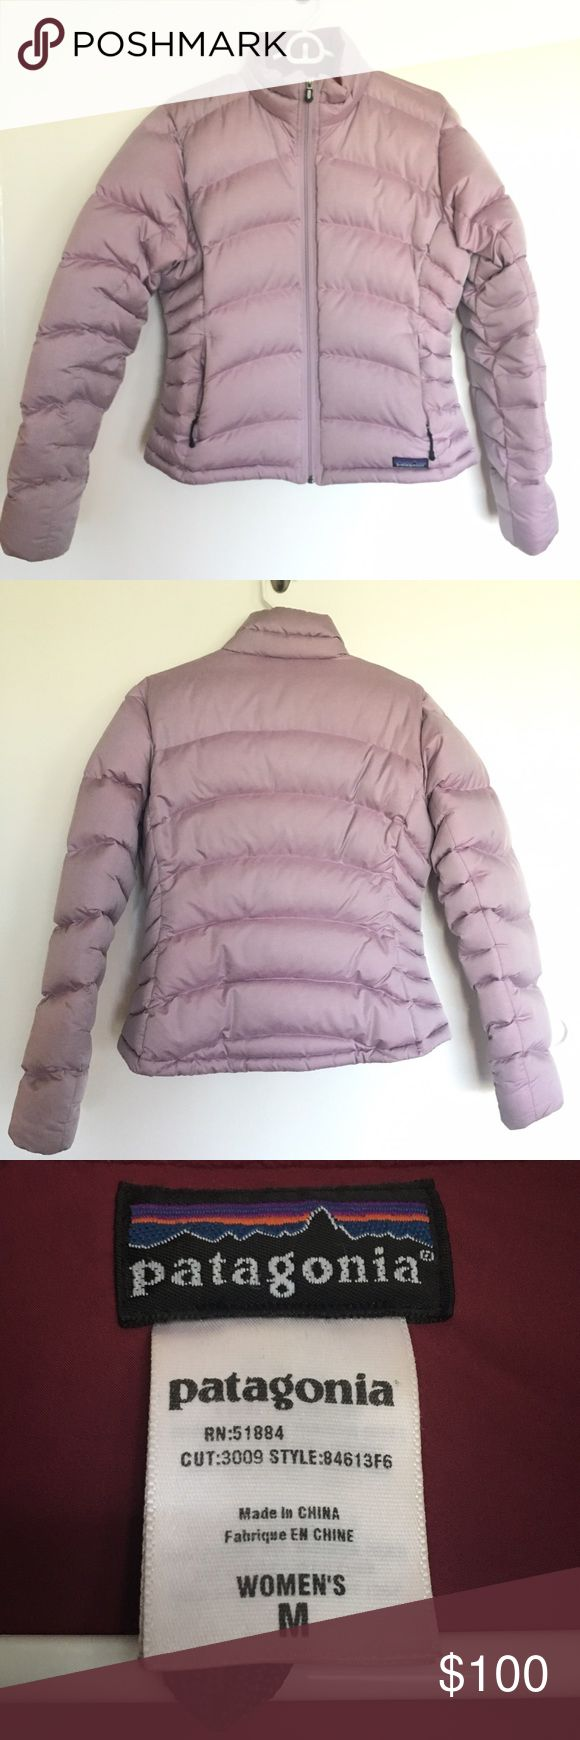 Patagonia Women's Puffer Down Jacket Size Medium, pastel pinkish purple in color, maroon colored lining inside, fleece material on the inside neck area. It has one inside zippered pocket, two outside zippered pockets, two draw-cords around the inside waist area to seal out the wind, 85% goosedown insulation. Slight darkening of material on the inside waist area from rubbing against my jeans, see last picture. Otherwise, in excellent condition, no other stains, rips or tears. Patagonia…